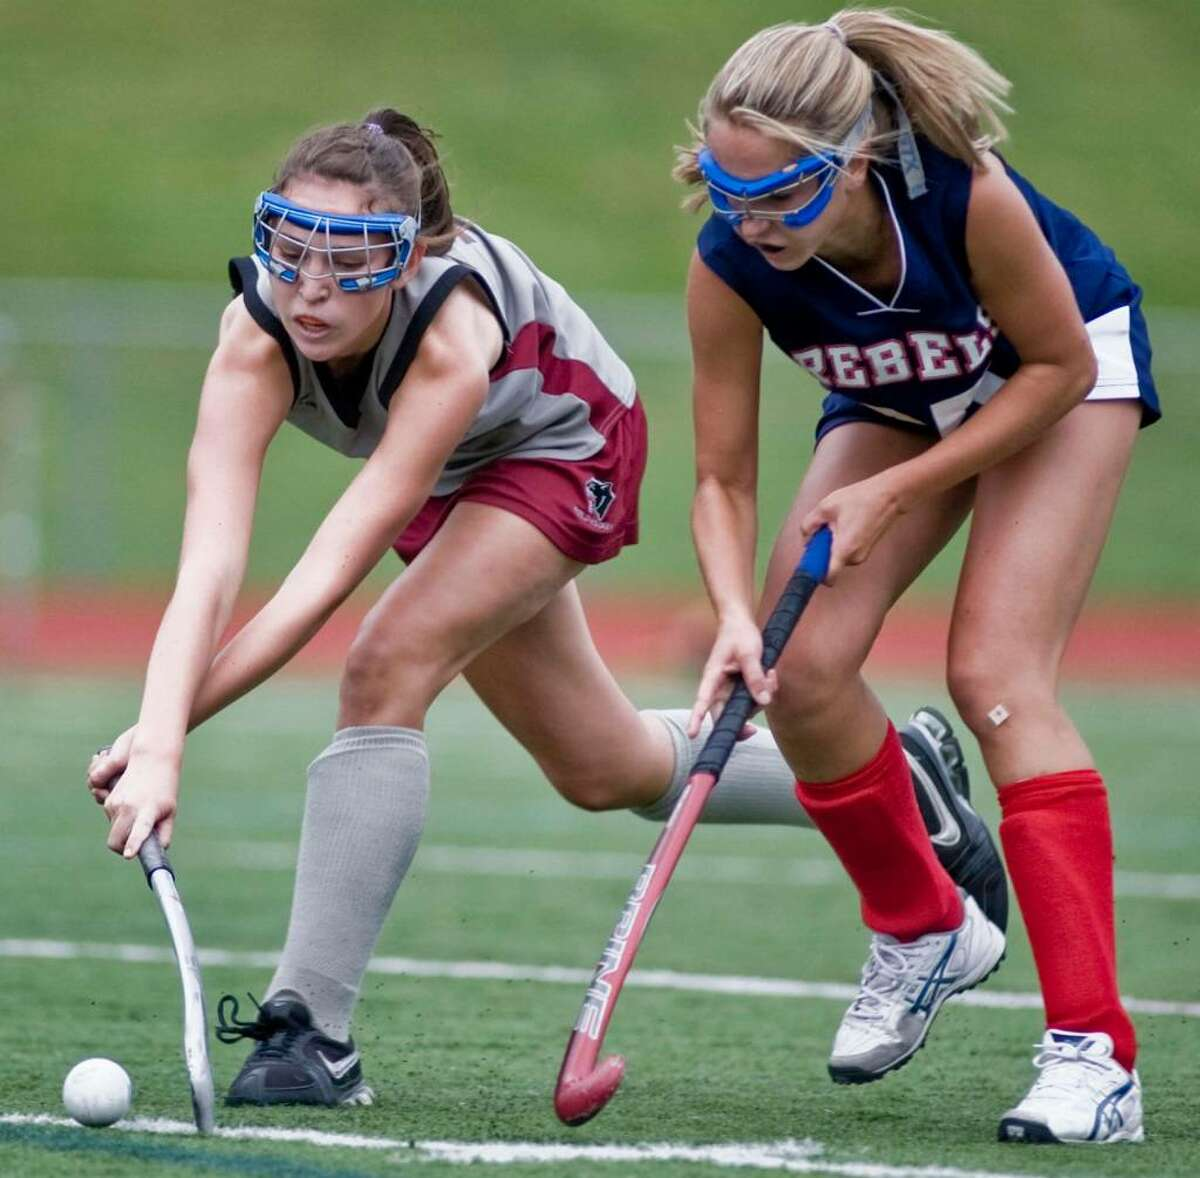 Pomperaug's Abby Dwyer and New Fairfield's Niki Van Houten battle for the ball during a field hockey game at Pomperaug. Tuesday, Sept. 29, 2009